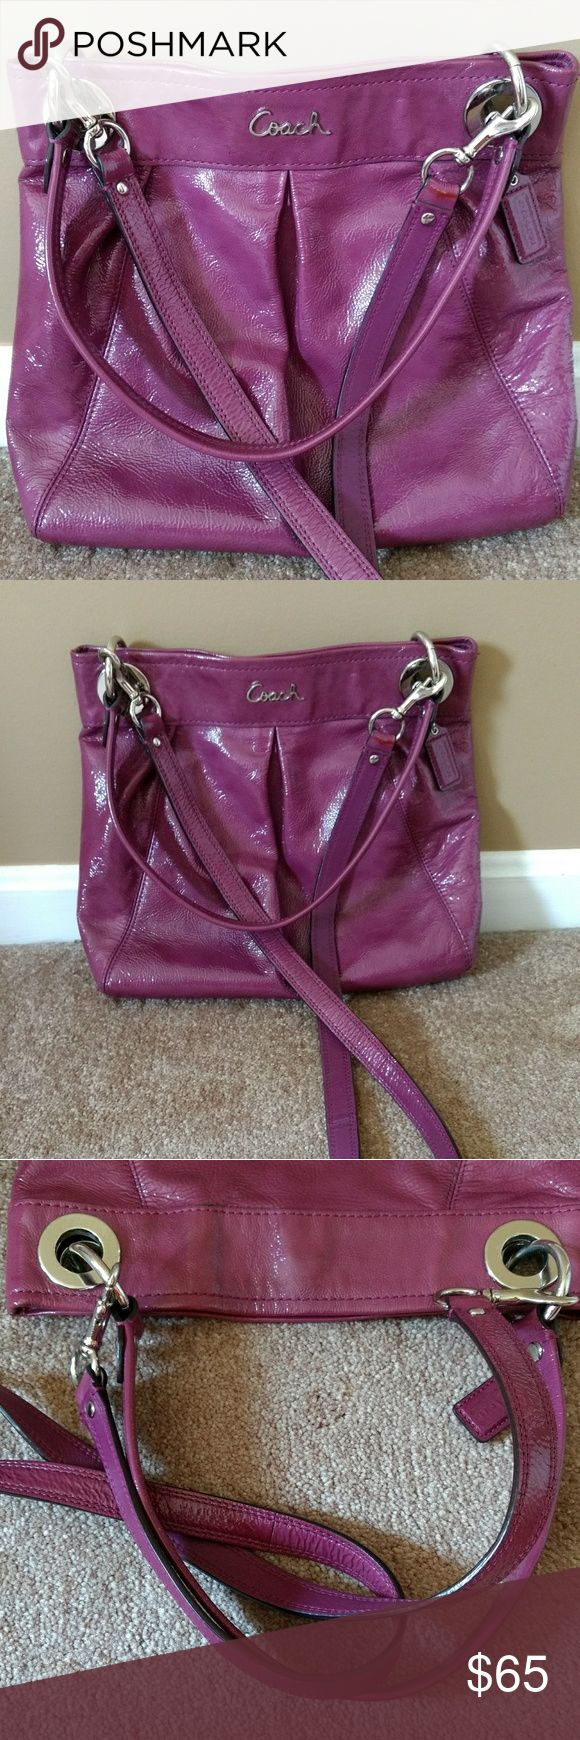 "Coach Ashley Purple Patent Leather Crossbody Bag Excellent condition, only one small dark spot on the back of the bag. see photo 5.    MSRP $298.00   Measures 11"" L x 12"" H x 2.5"" W   Patent Leather Exterior   Polished Nickel Hardware, including Script Logo on Front Exterior   Pleat Detailing   Cobalt Patent Leather Hangtag   Versatile! Can be Carried In-Hand, On-Shoulder, or Worn Cross-Body:  18"" Leather Strap with 8"" Drop  40"" Detachable Leather Strap with Dogleash Clips - 22"" Drop…"